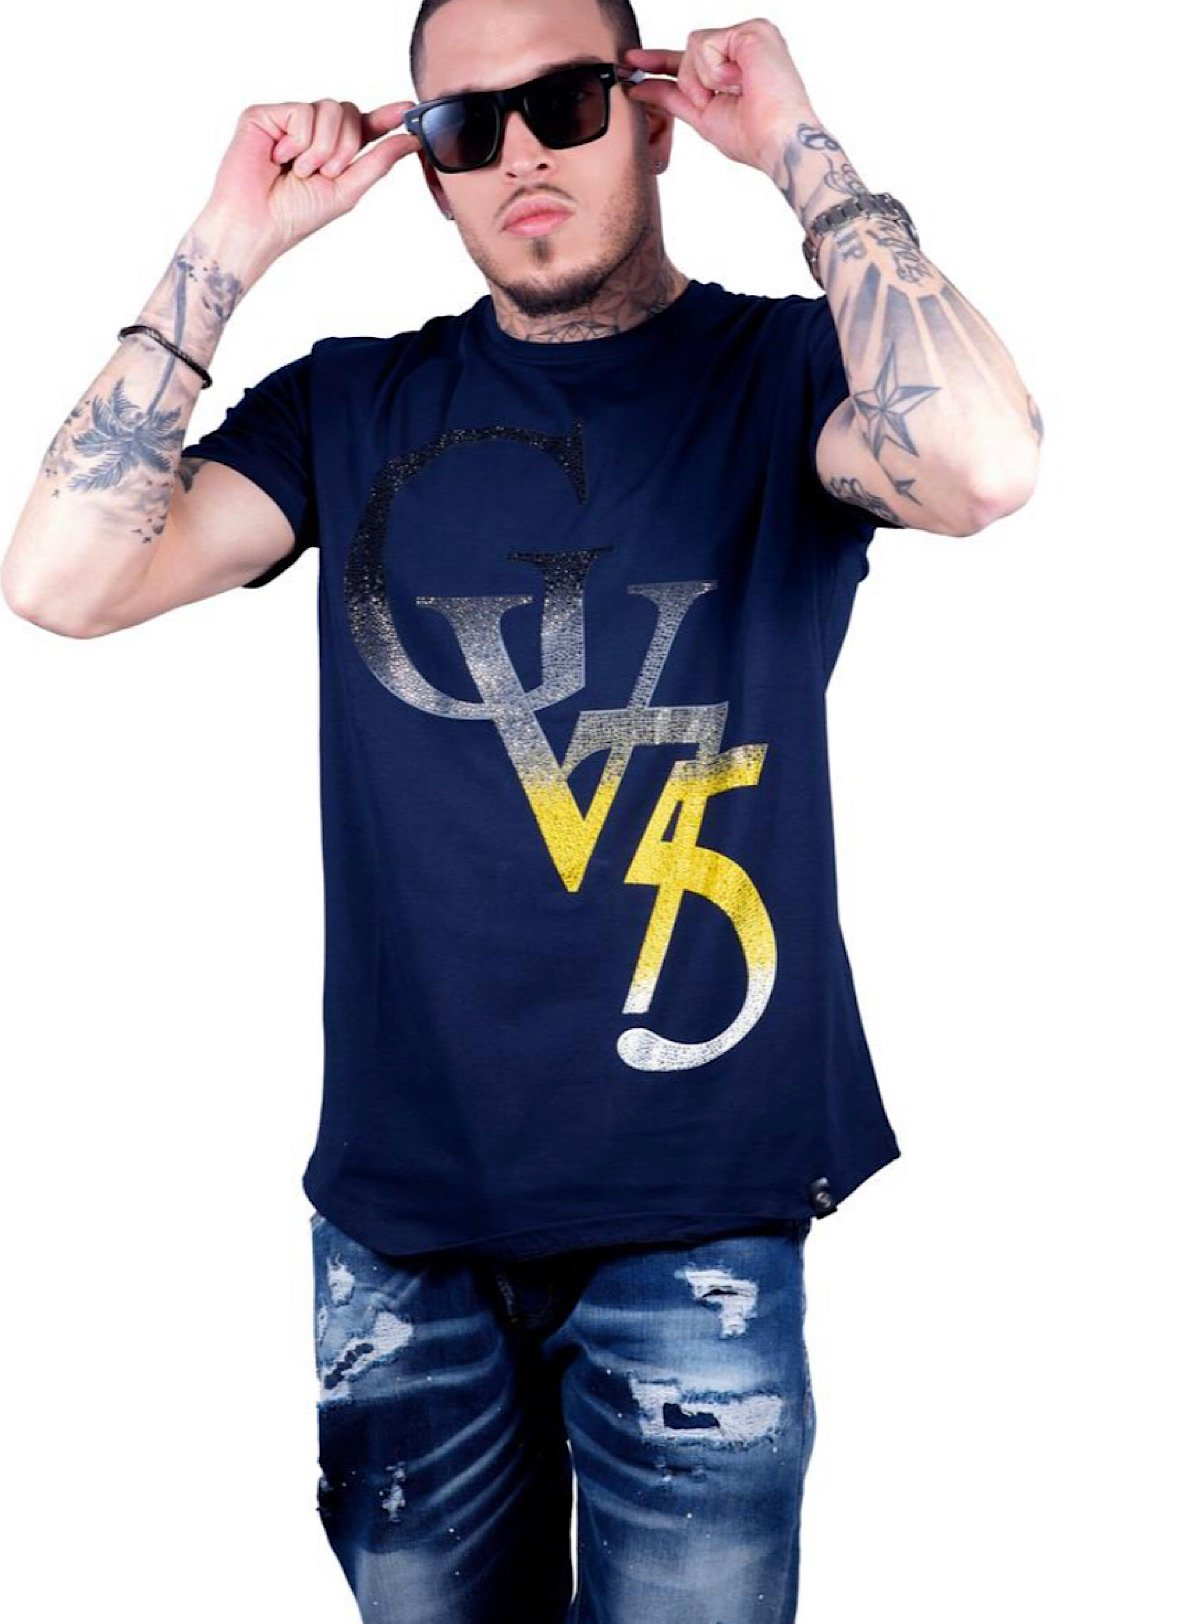 George V T-Shirt - GV Sign - Navy And Yellow - GV-2029